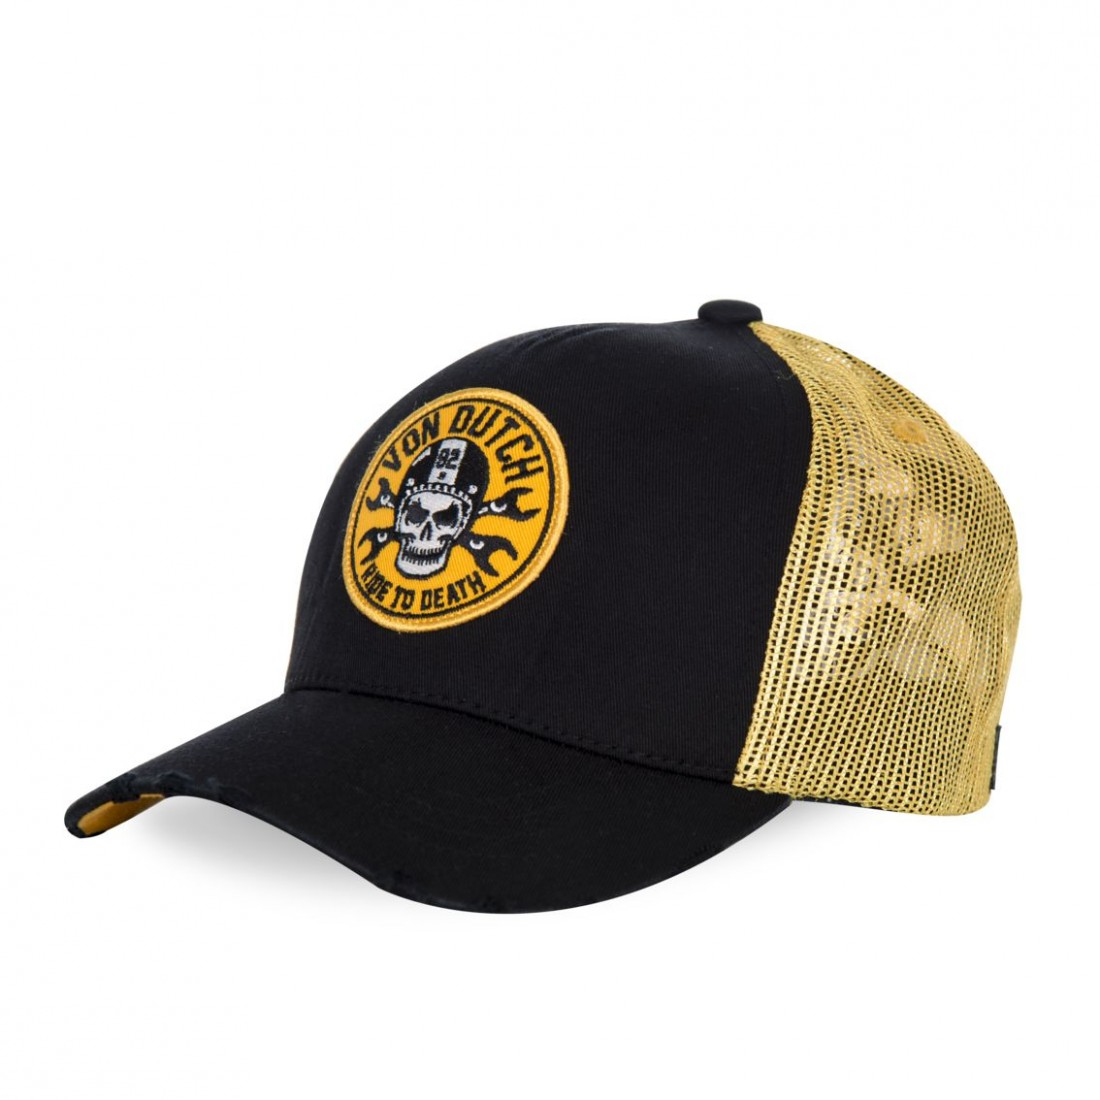 Casquette baseball homme filet Von Dutch Ride Noir